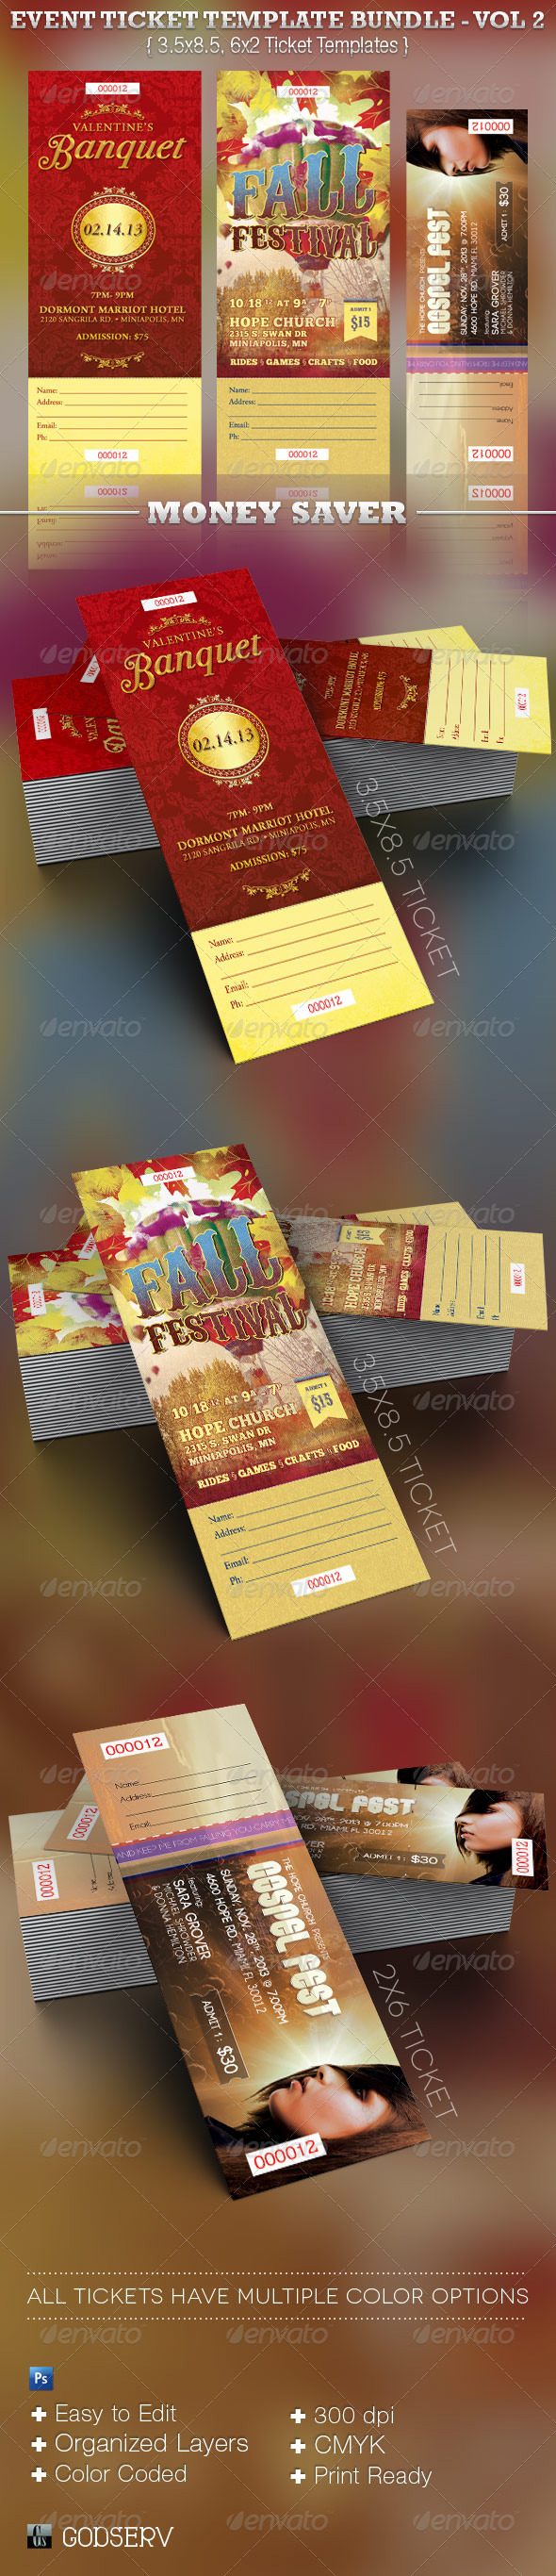 Event Ticket Template Bundle Volume 2 - Miscellaneous Print Templates